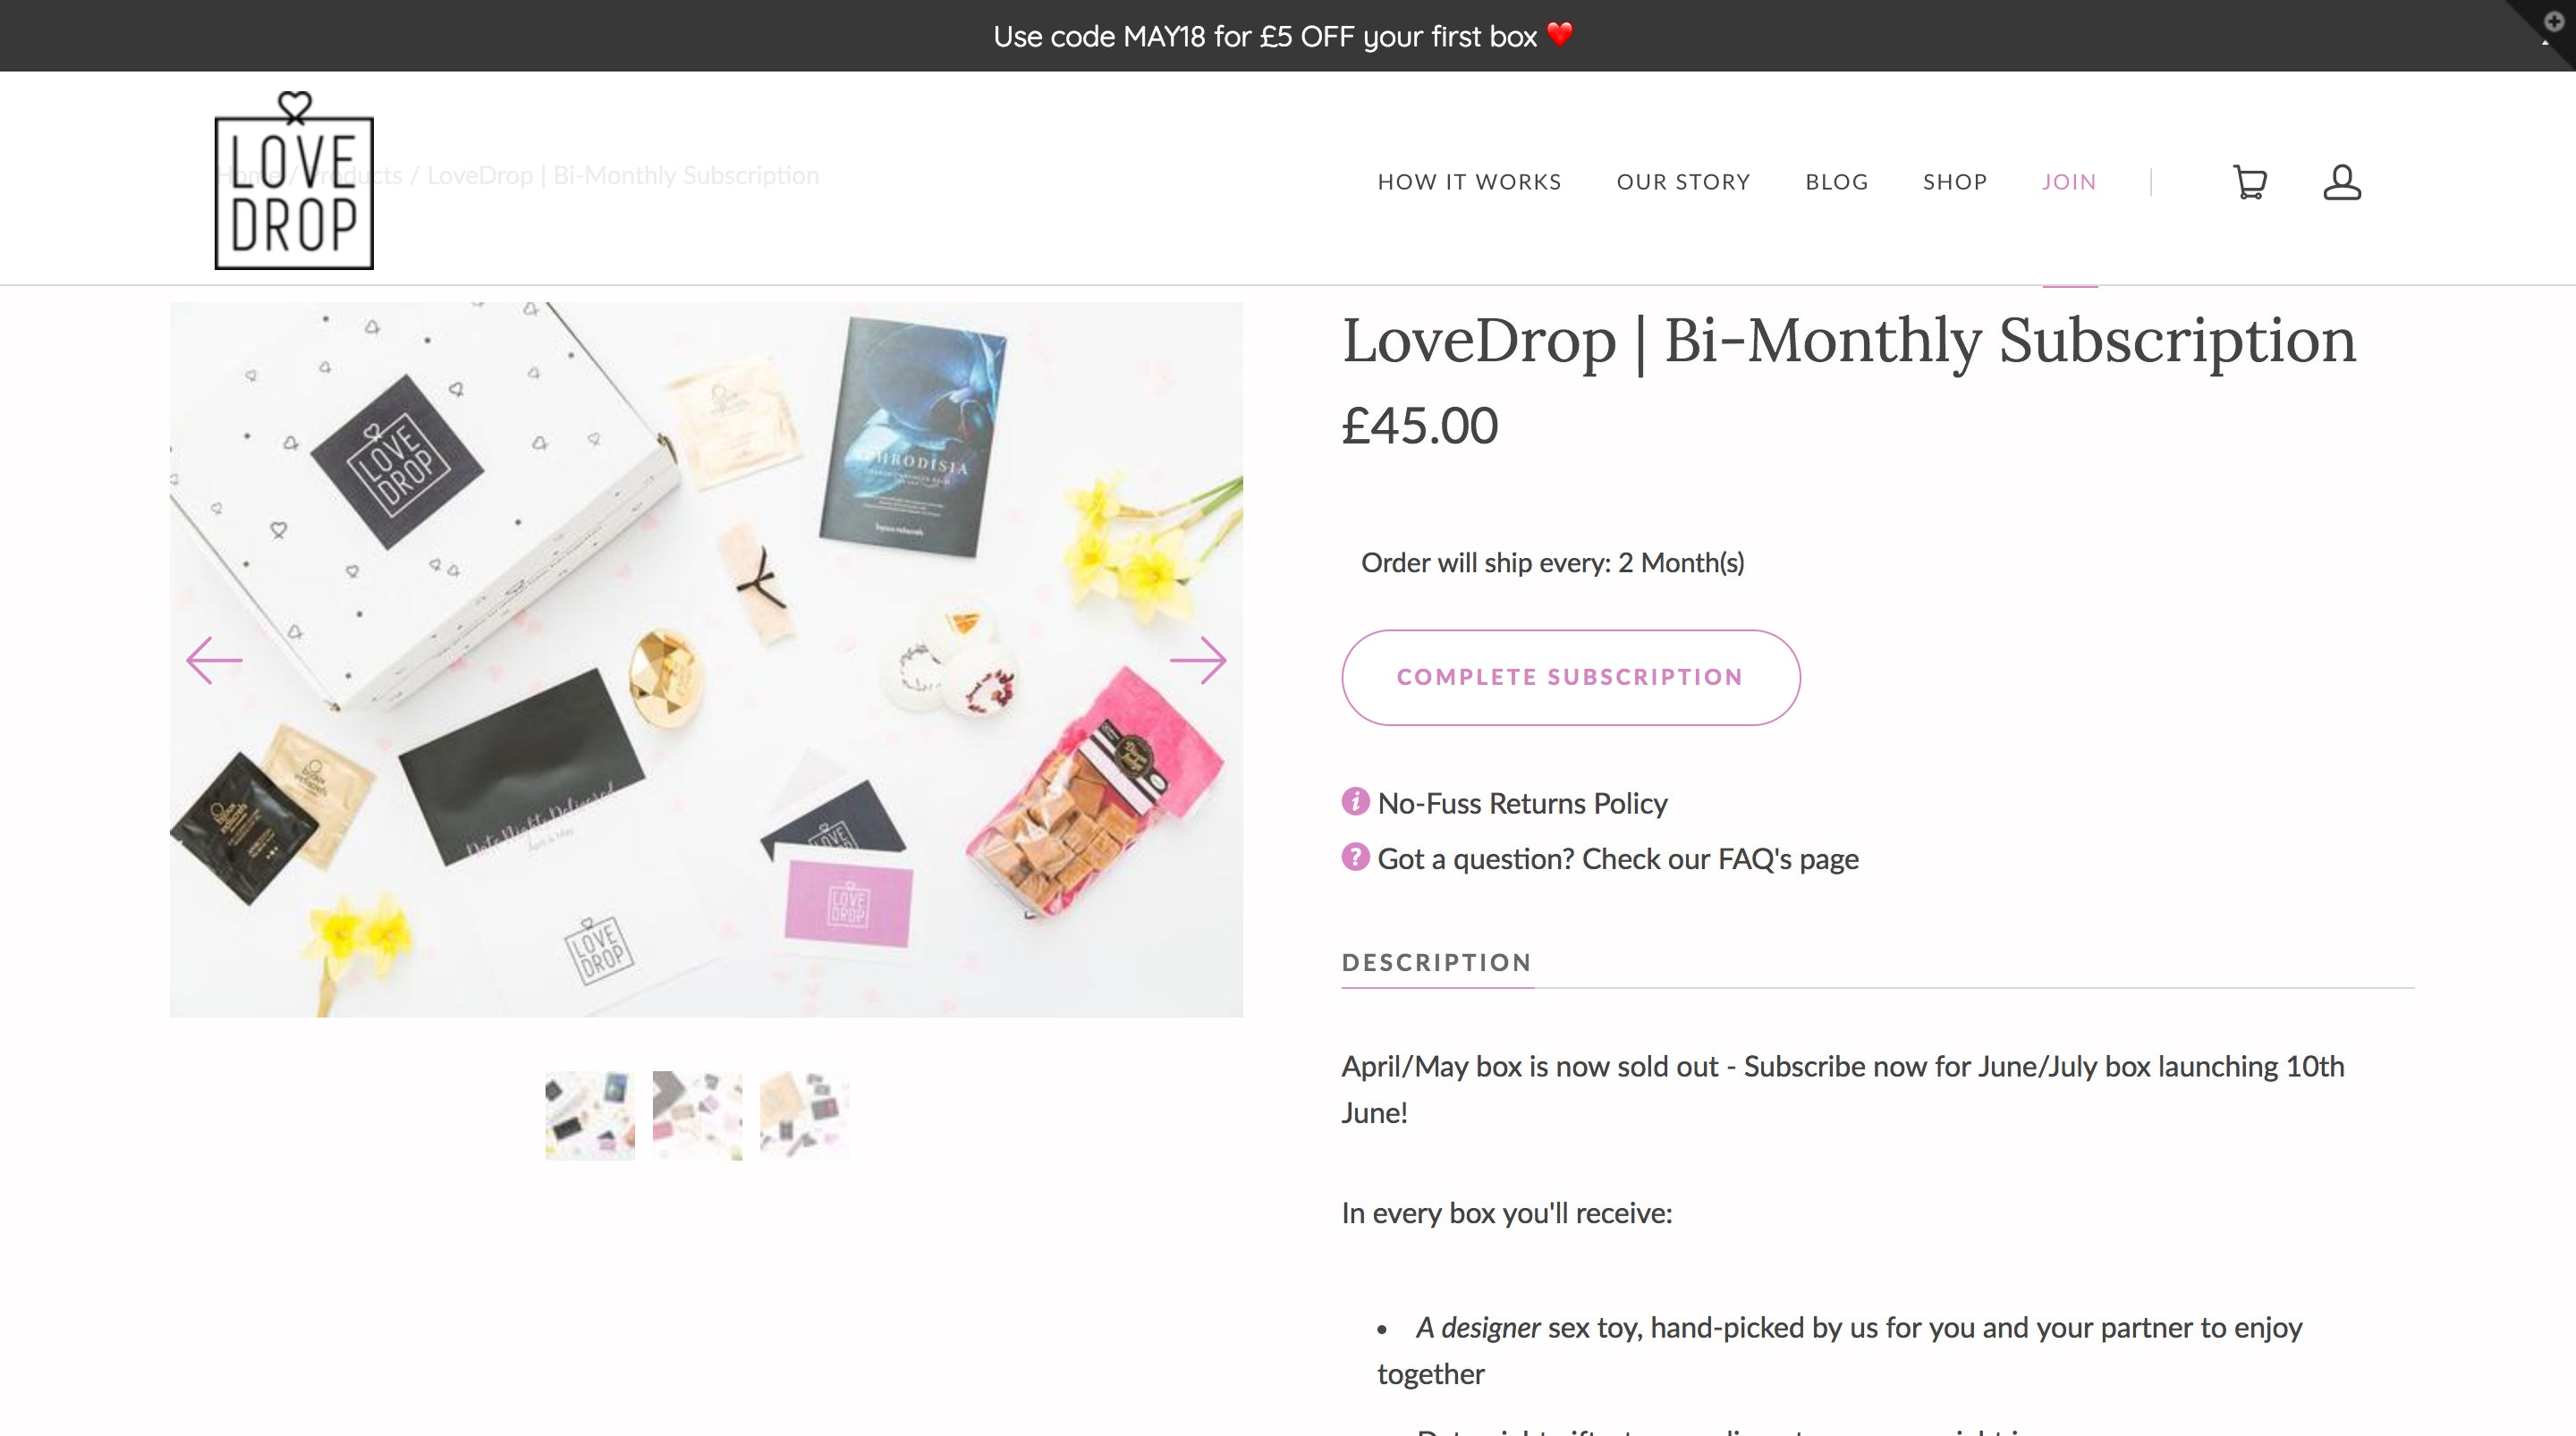 LoveDrop - The Date Night Subscription Box Screenshot - 3